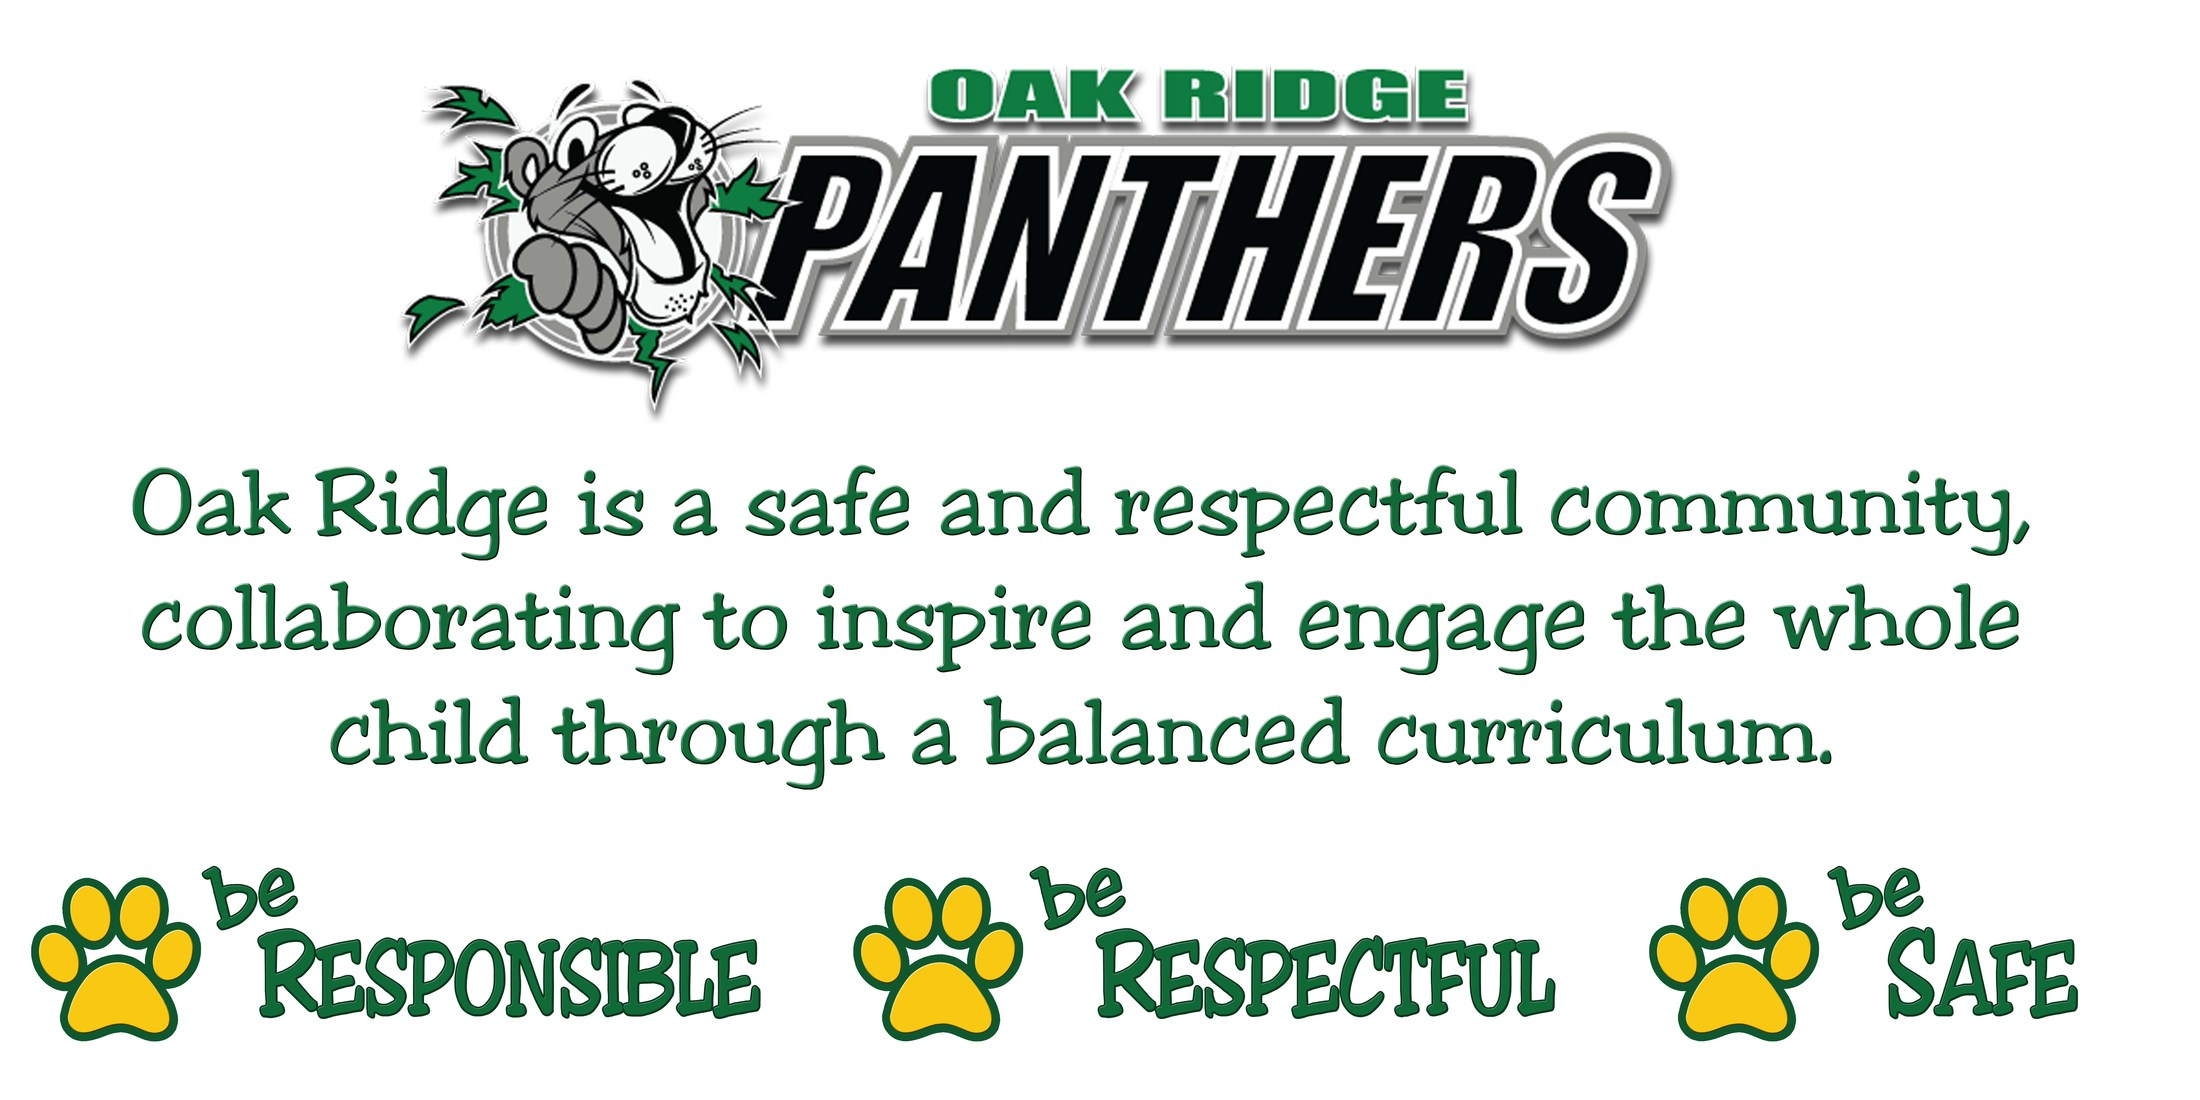 Oak Ridge Mission Statement